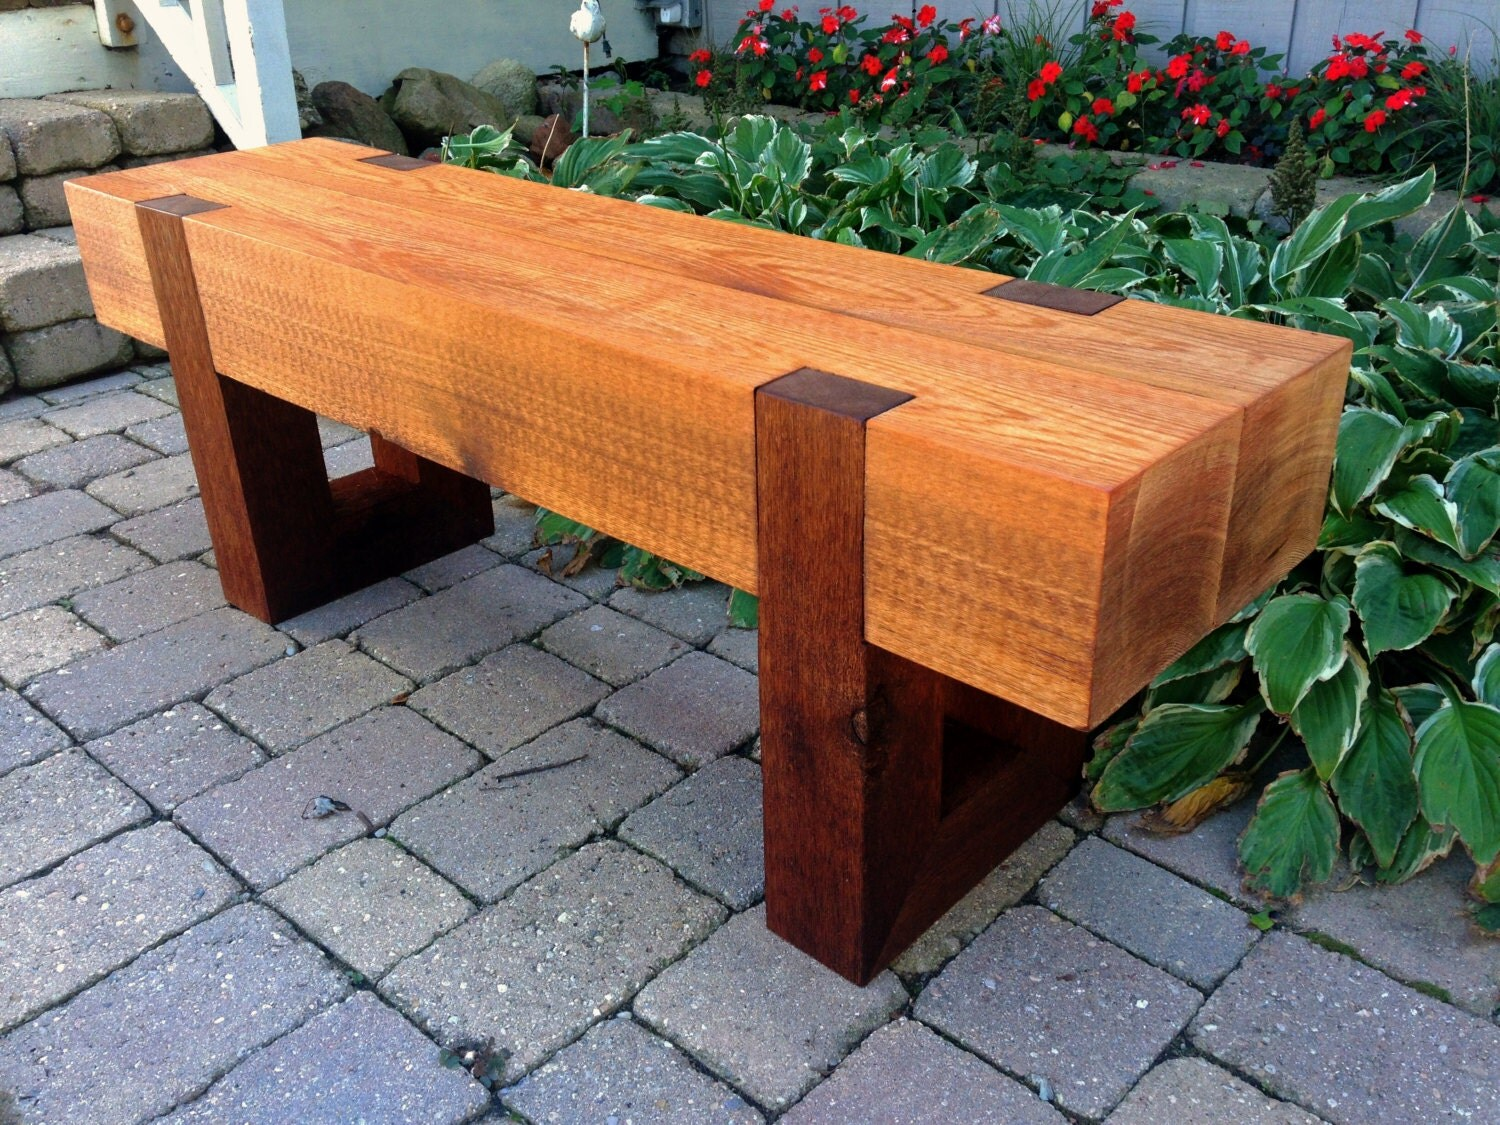 Wooden Patio Bench ~ Rustic wood bench outdoor patio garden